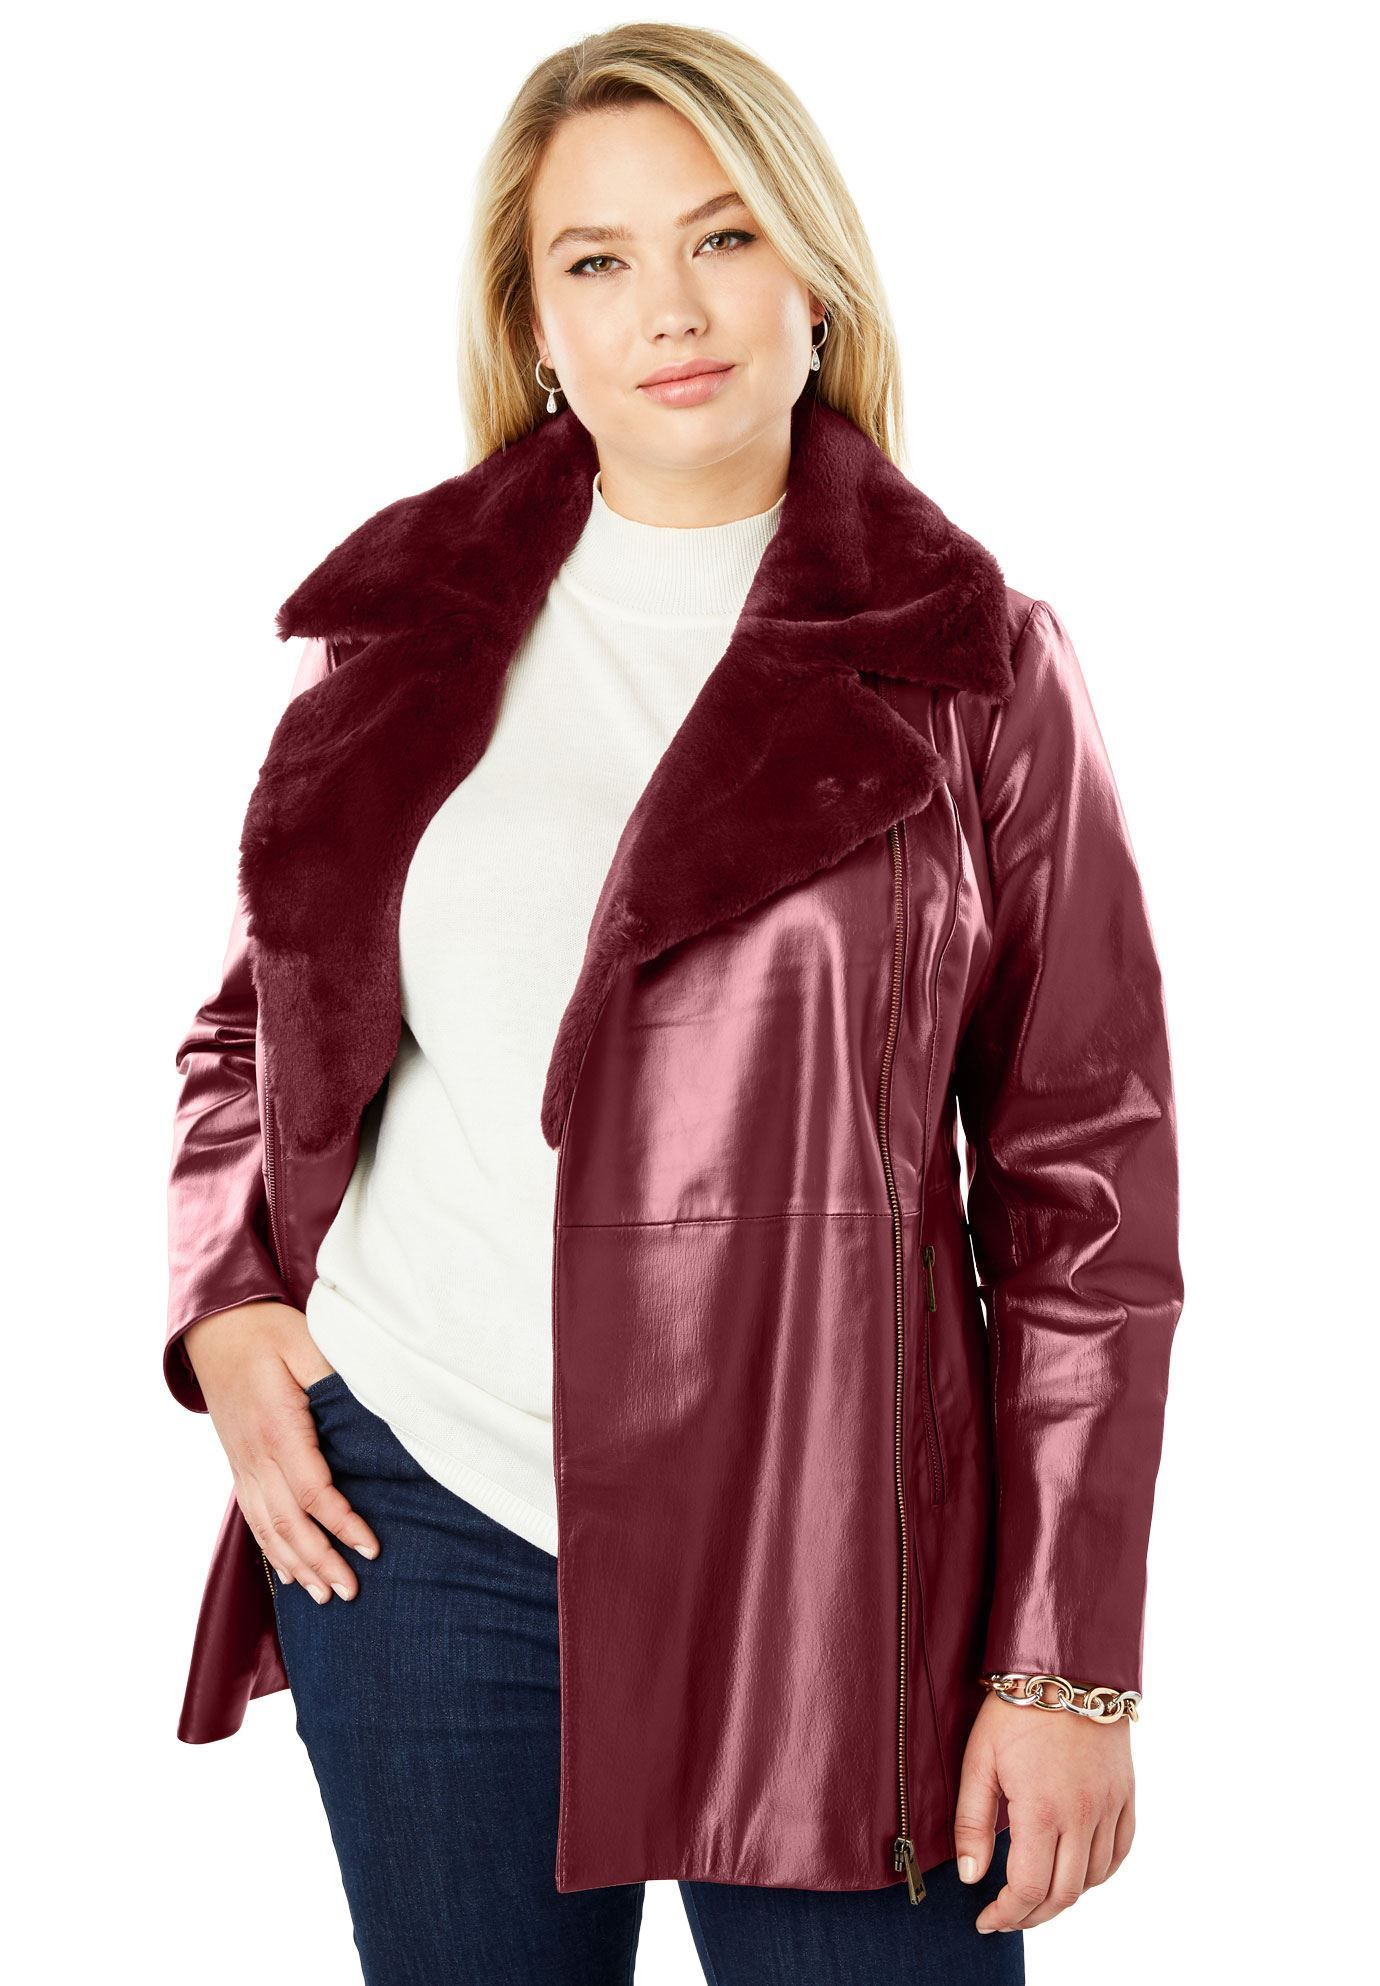 96c38a036902f Faux Sherpa Leather Jacket - Women s Plus Size Clothing